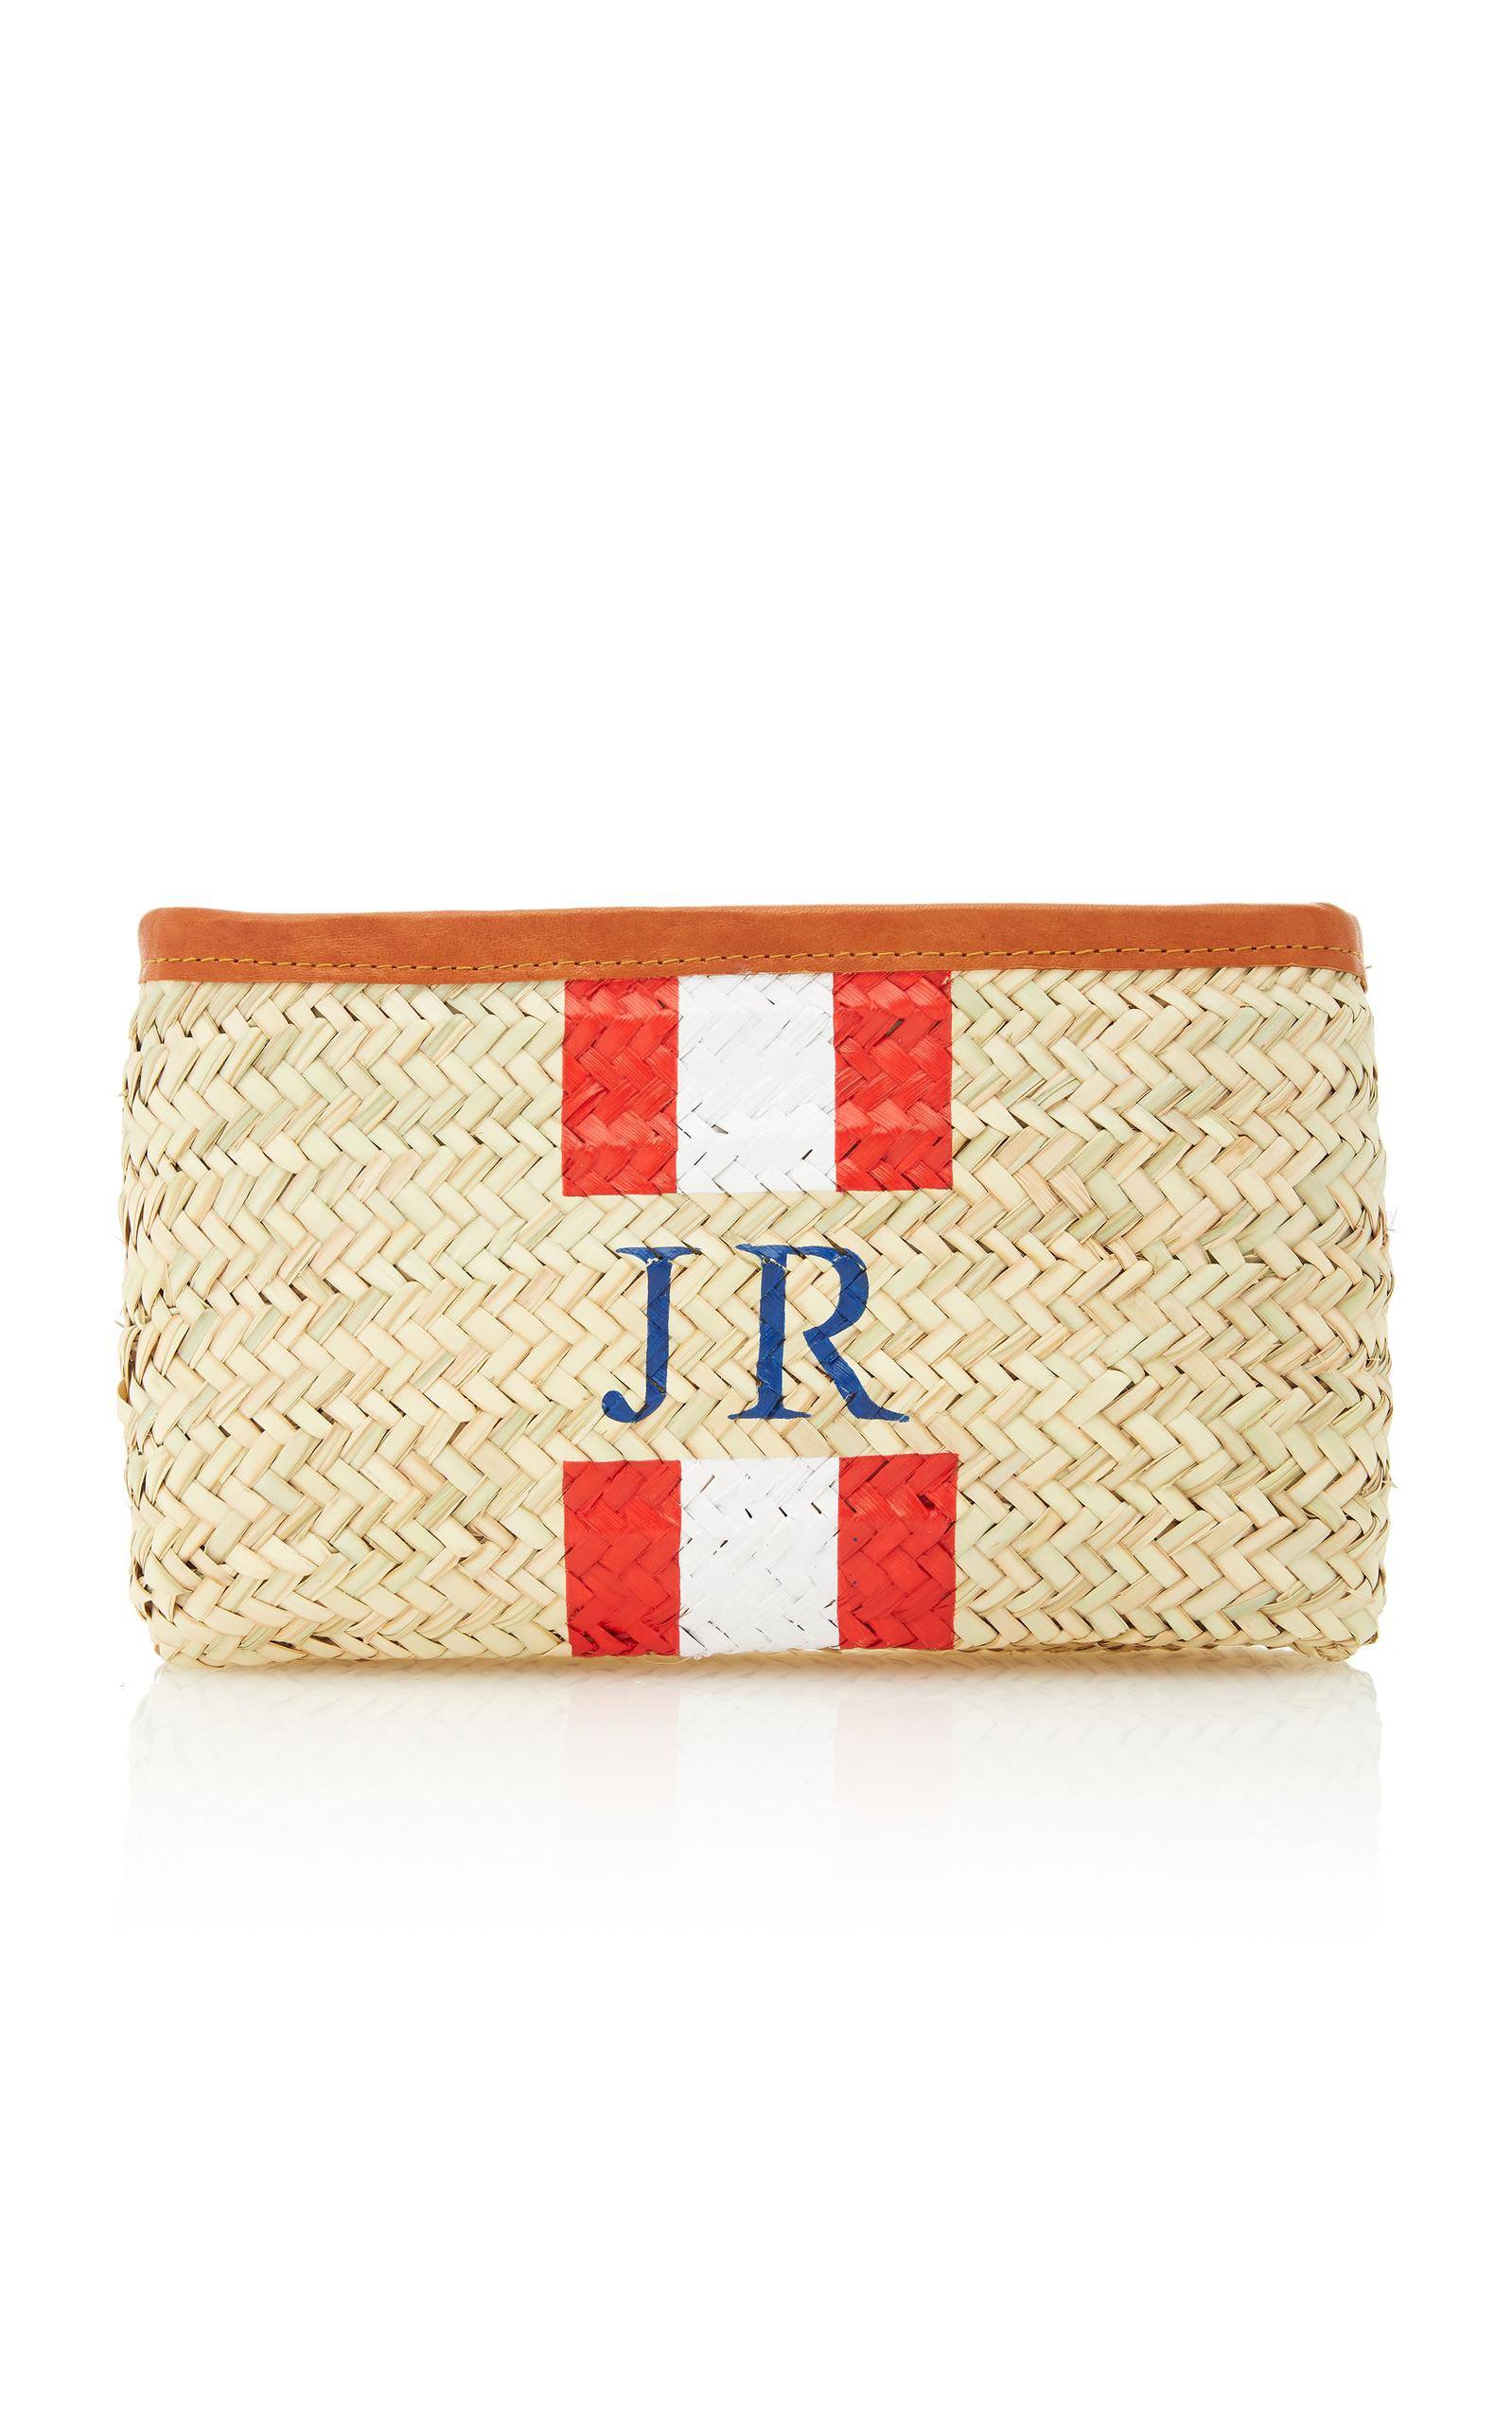 Rae Feather M'o Exclusive Monogram Straw Clutch In Red